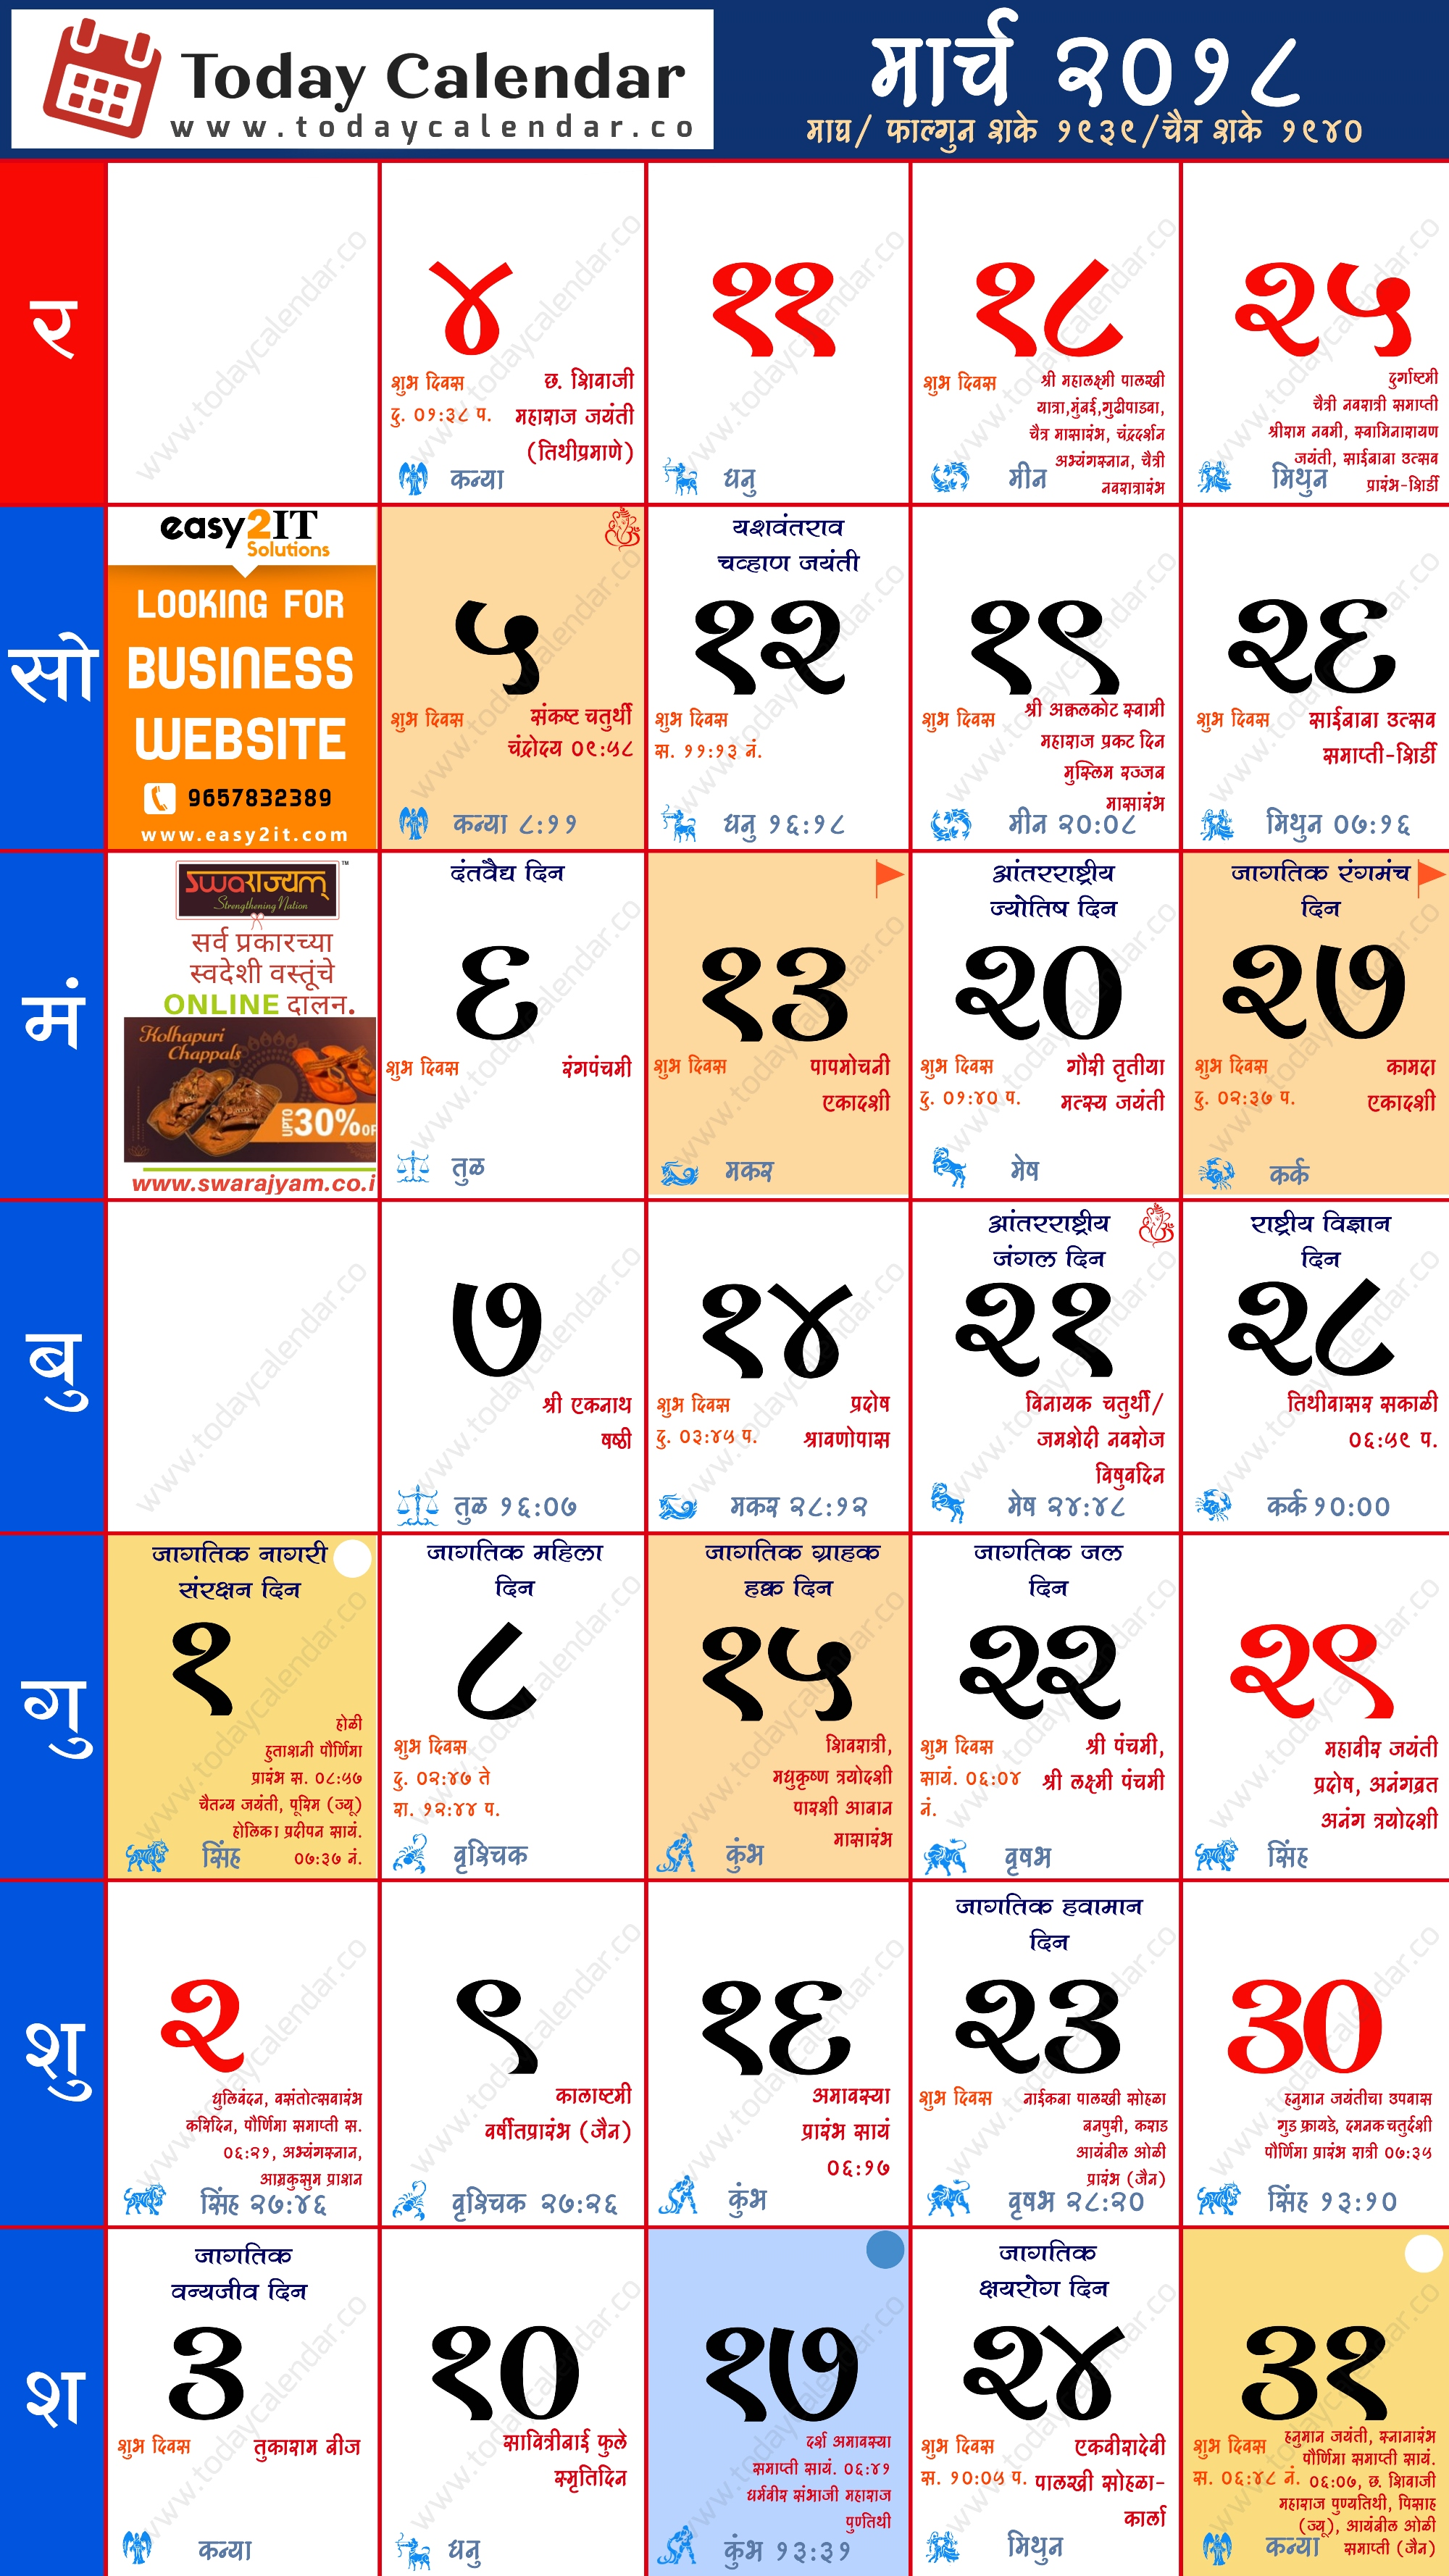 March marathi calendar 2018 todaycalendar